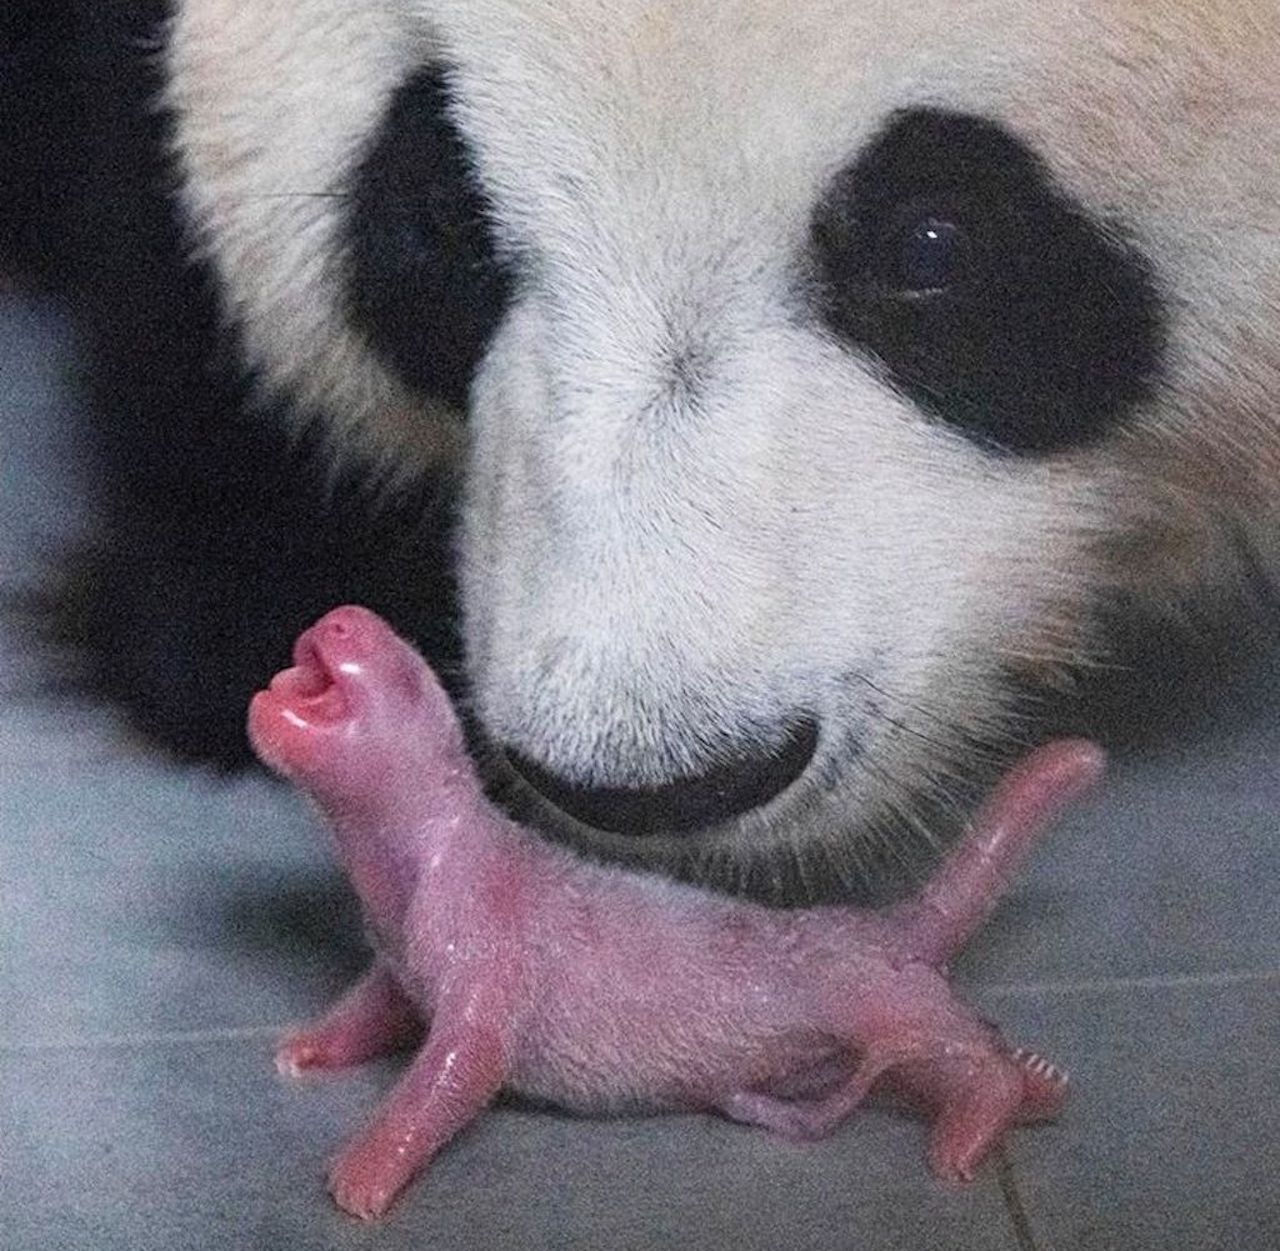 Birth of baby panda in Korean zoon